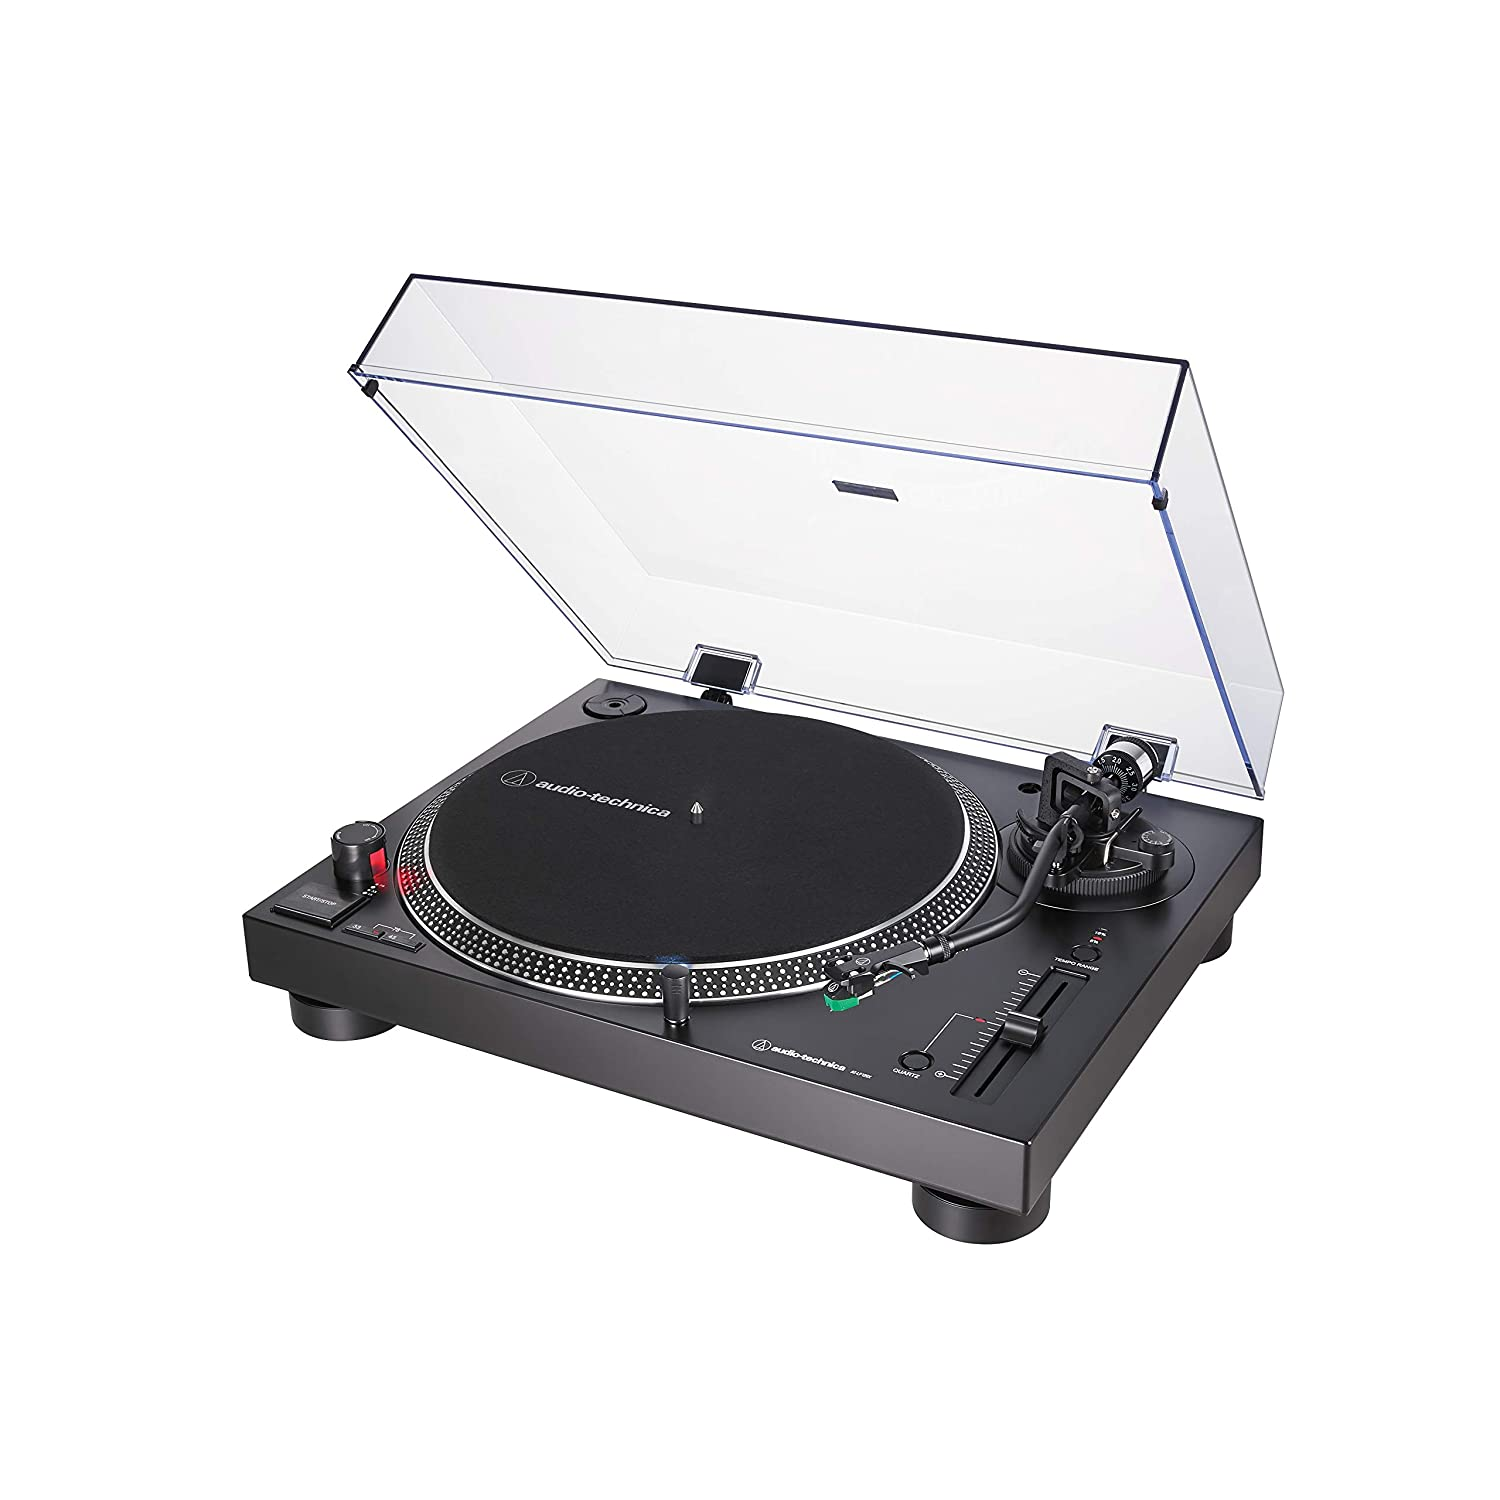 Audio-Technica AT-LP120X, Tocadiscos con USB Plug & Play, Negro